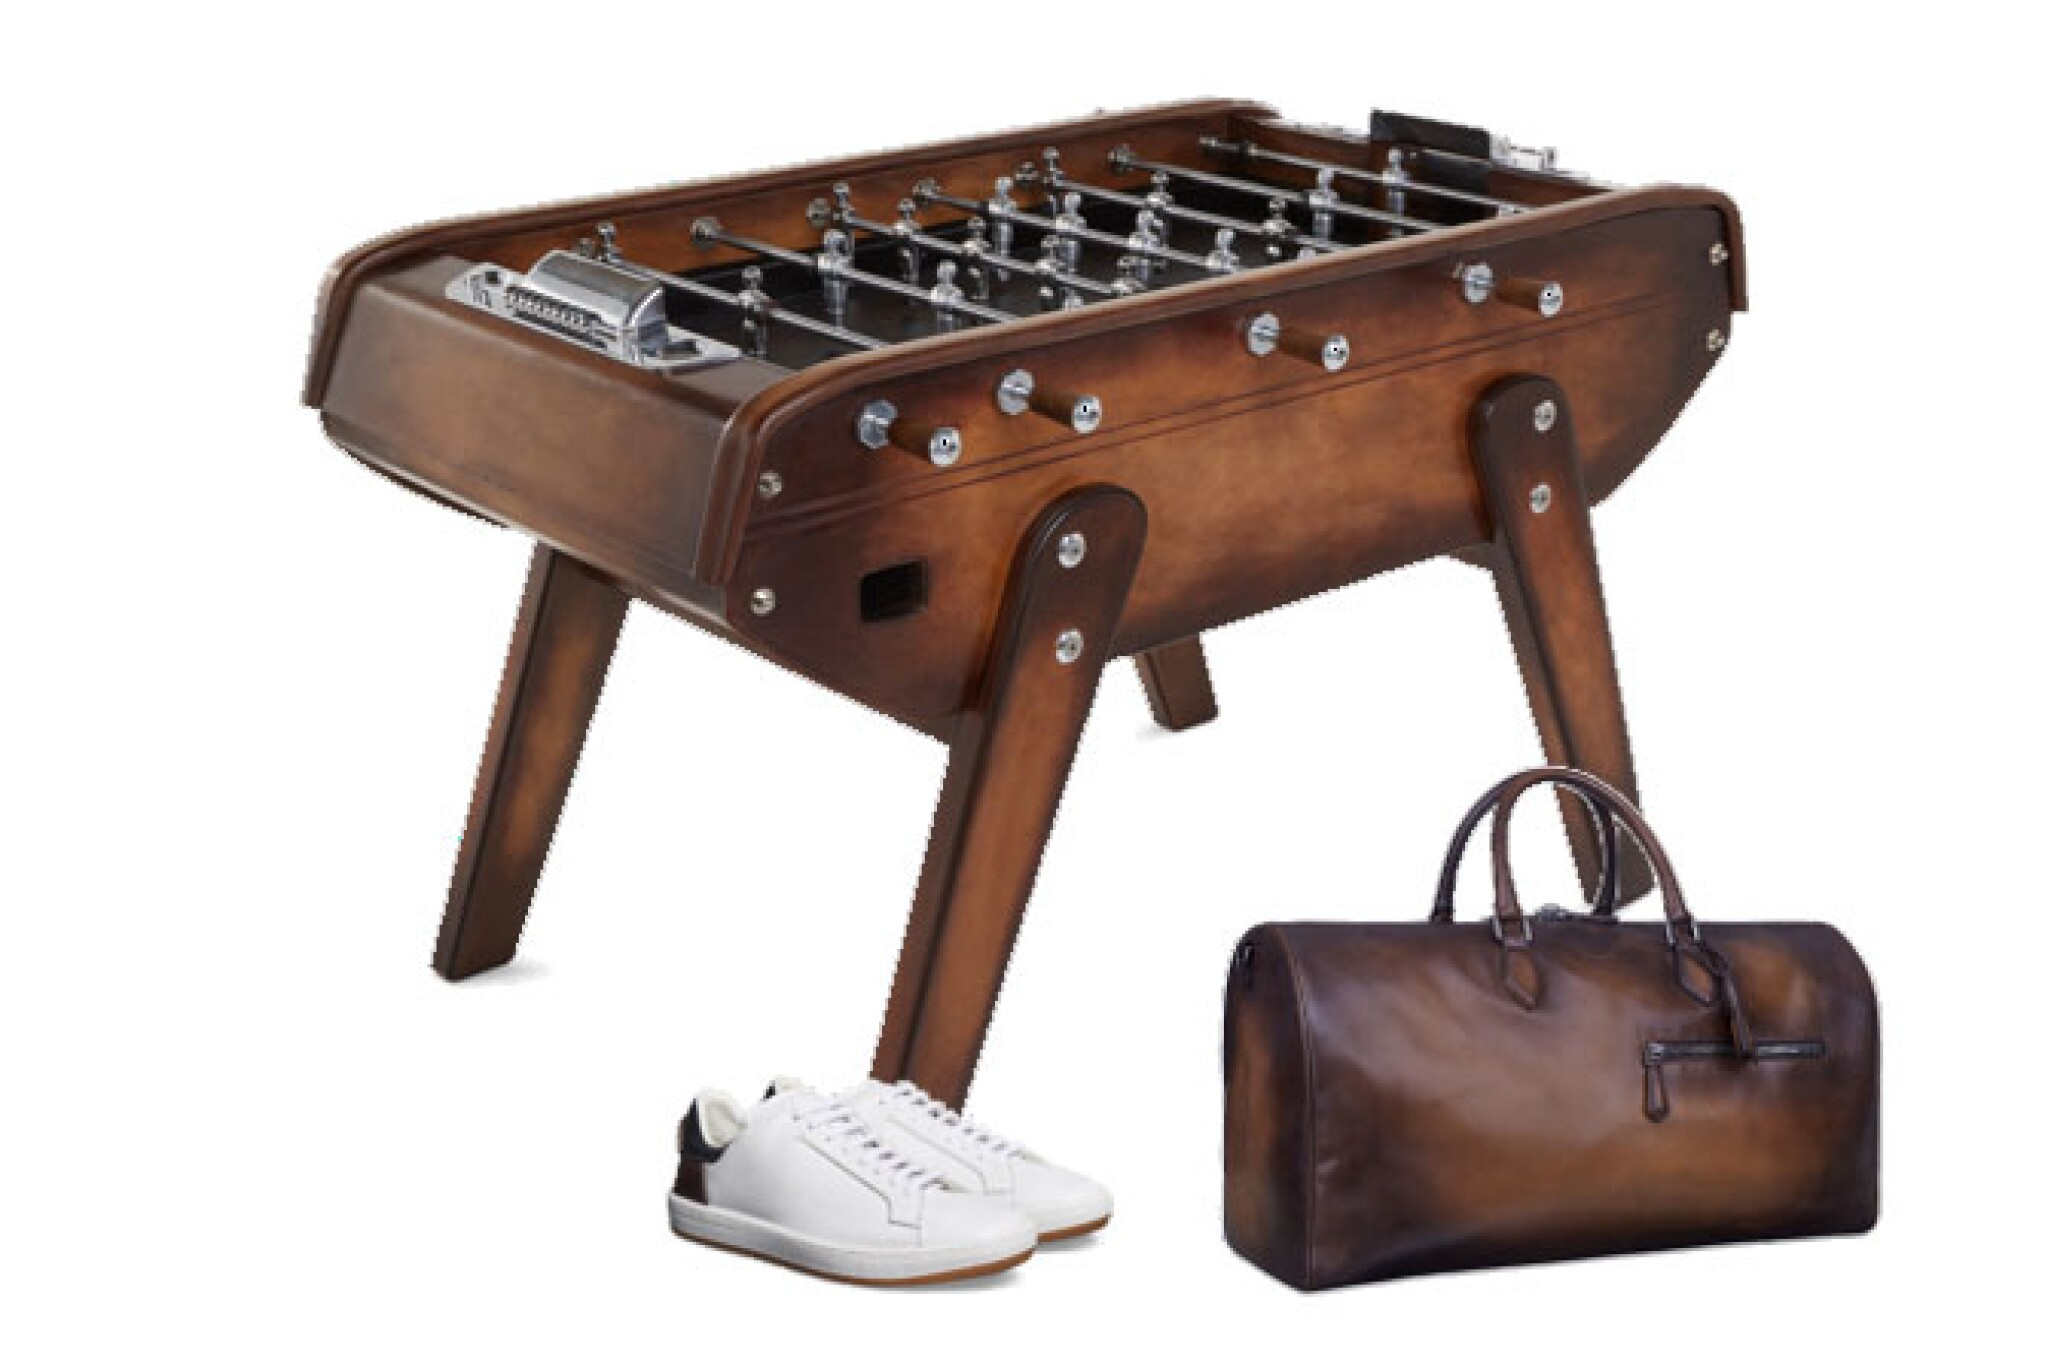 View full screen - View 1 of Lot 11. Berluti   Table Football, Travel Bag Jour Off Gm and Sneakers Outline (Baby Foot, Sac de Voyage Jour Off Gm et Sneakers Outline)  [3 Items / Articles].